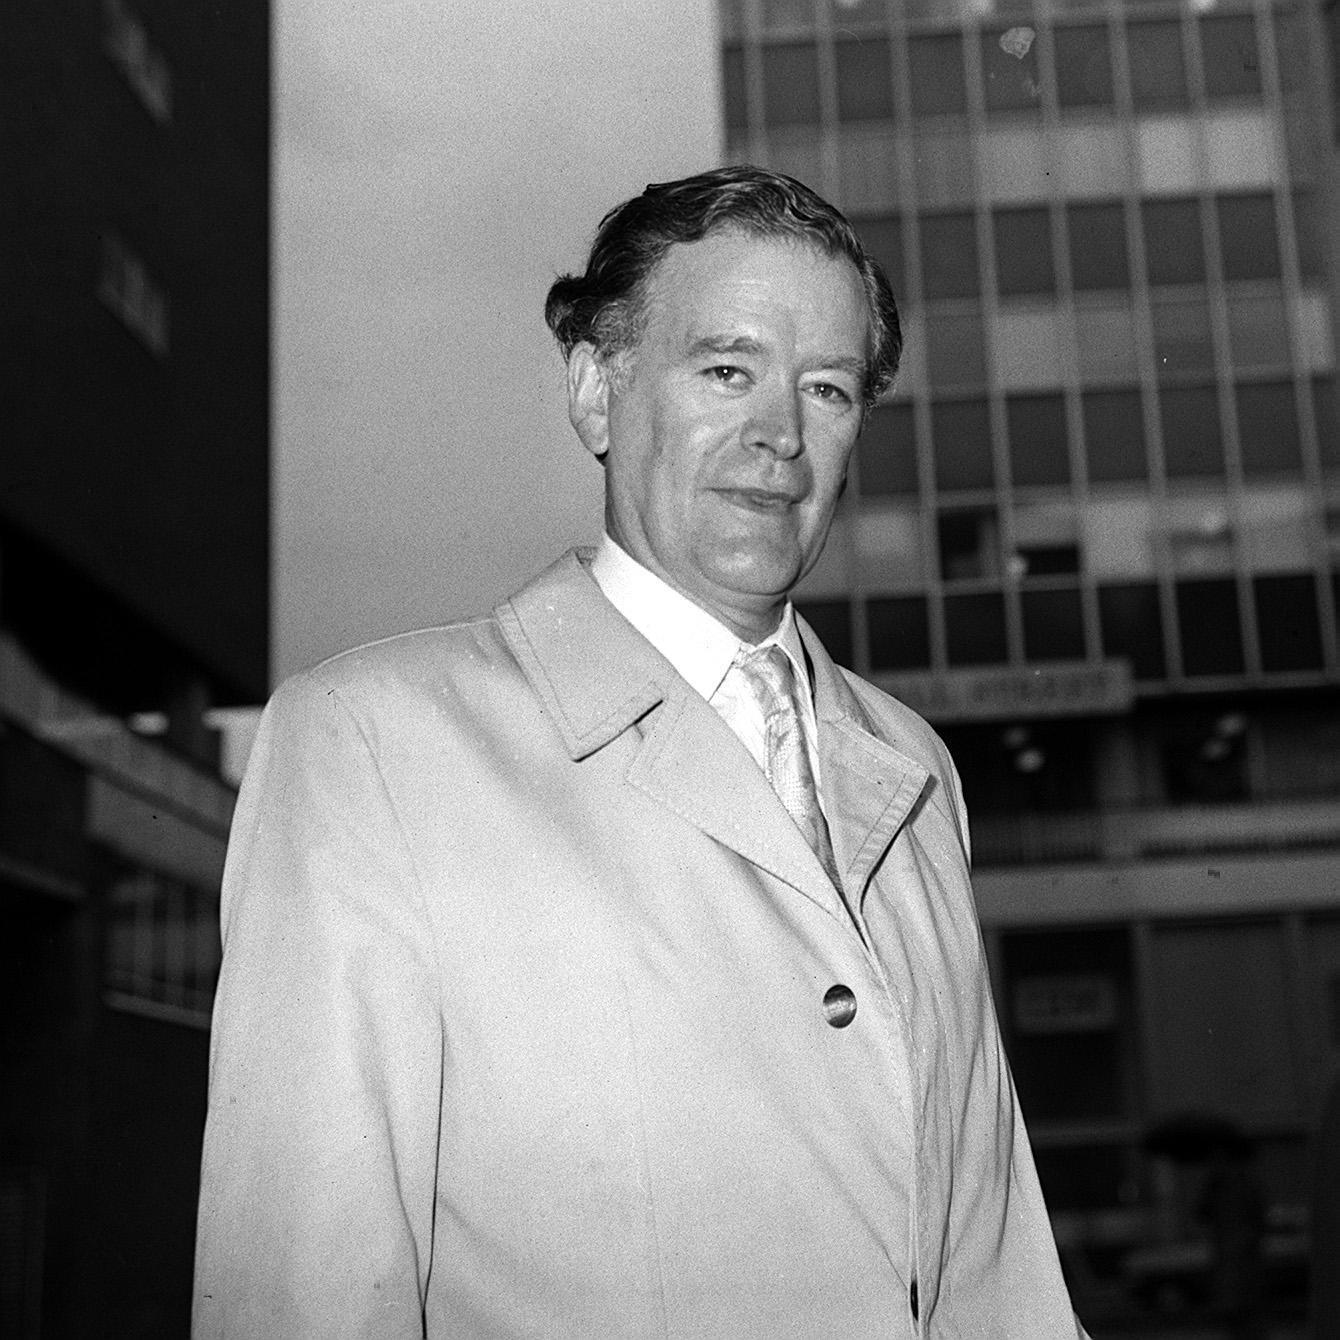 <p>Slater was another highly controversial investor, known for corporate raids on public companies, and subsequent asset stripping to realise quick value for shareholders.</p>  <p>He also invented the phrase 'The Zulu Principle' to describe the importance of being a specialist when you are investing, so you can concentrate your research efforts and know more than the rest of the market about something specific.</p>